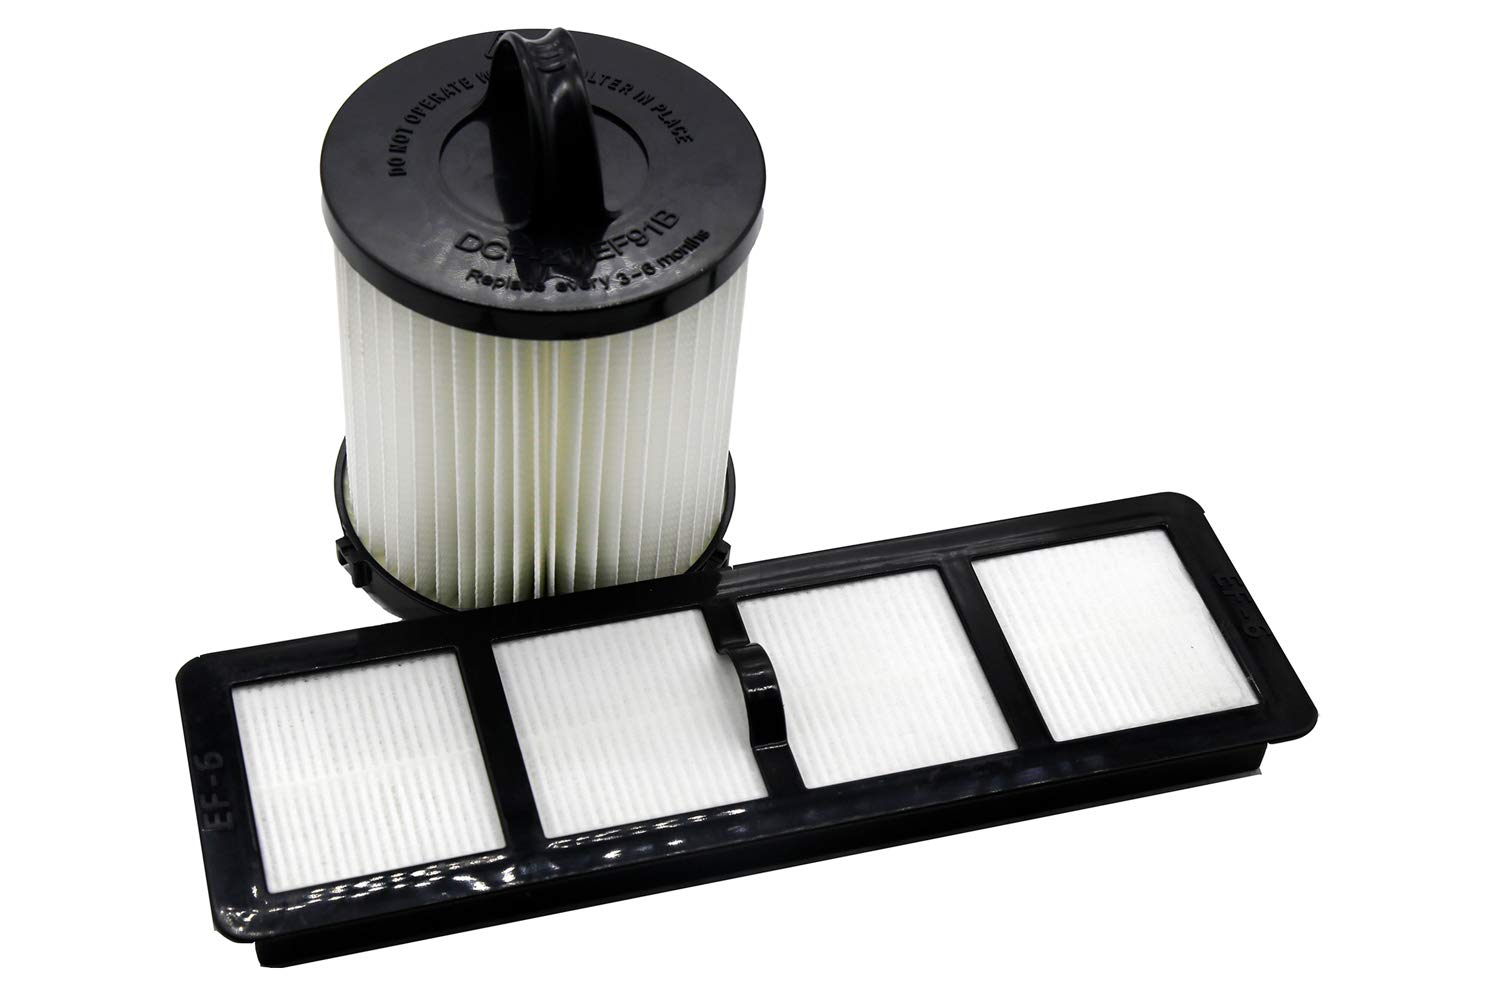 Green Label HEPA Filter Kit DCF-21 and EF-6 for Eureka Airspeed Upright Vacuum Replacement Set (compares to 67821, 68931, 68931A, EF91, EF-91, EF-91B, 83091-1)